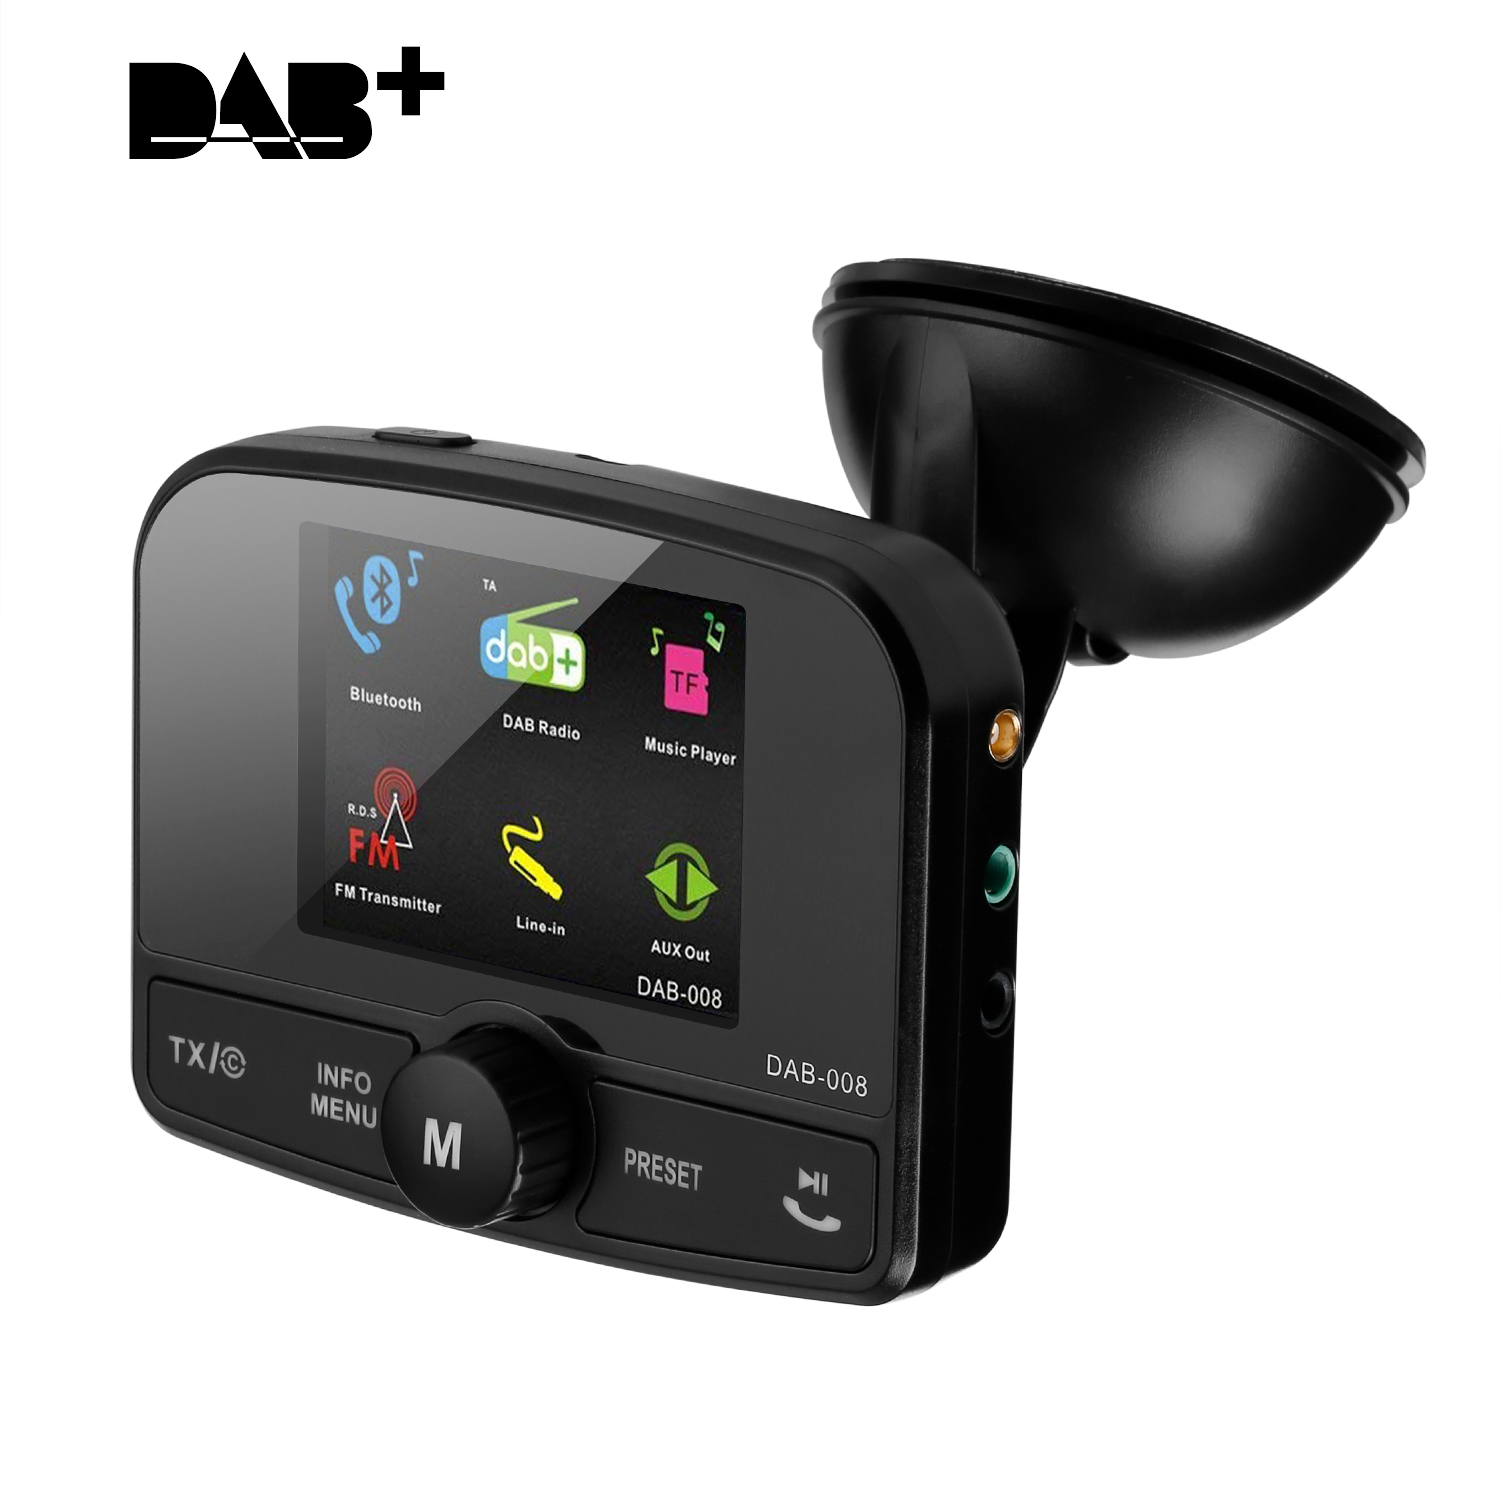 excelvan car digital radio dab dab adapter with bluetooth. Black Bedroom Furniture Sets. Home Design Ideas